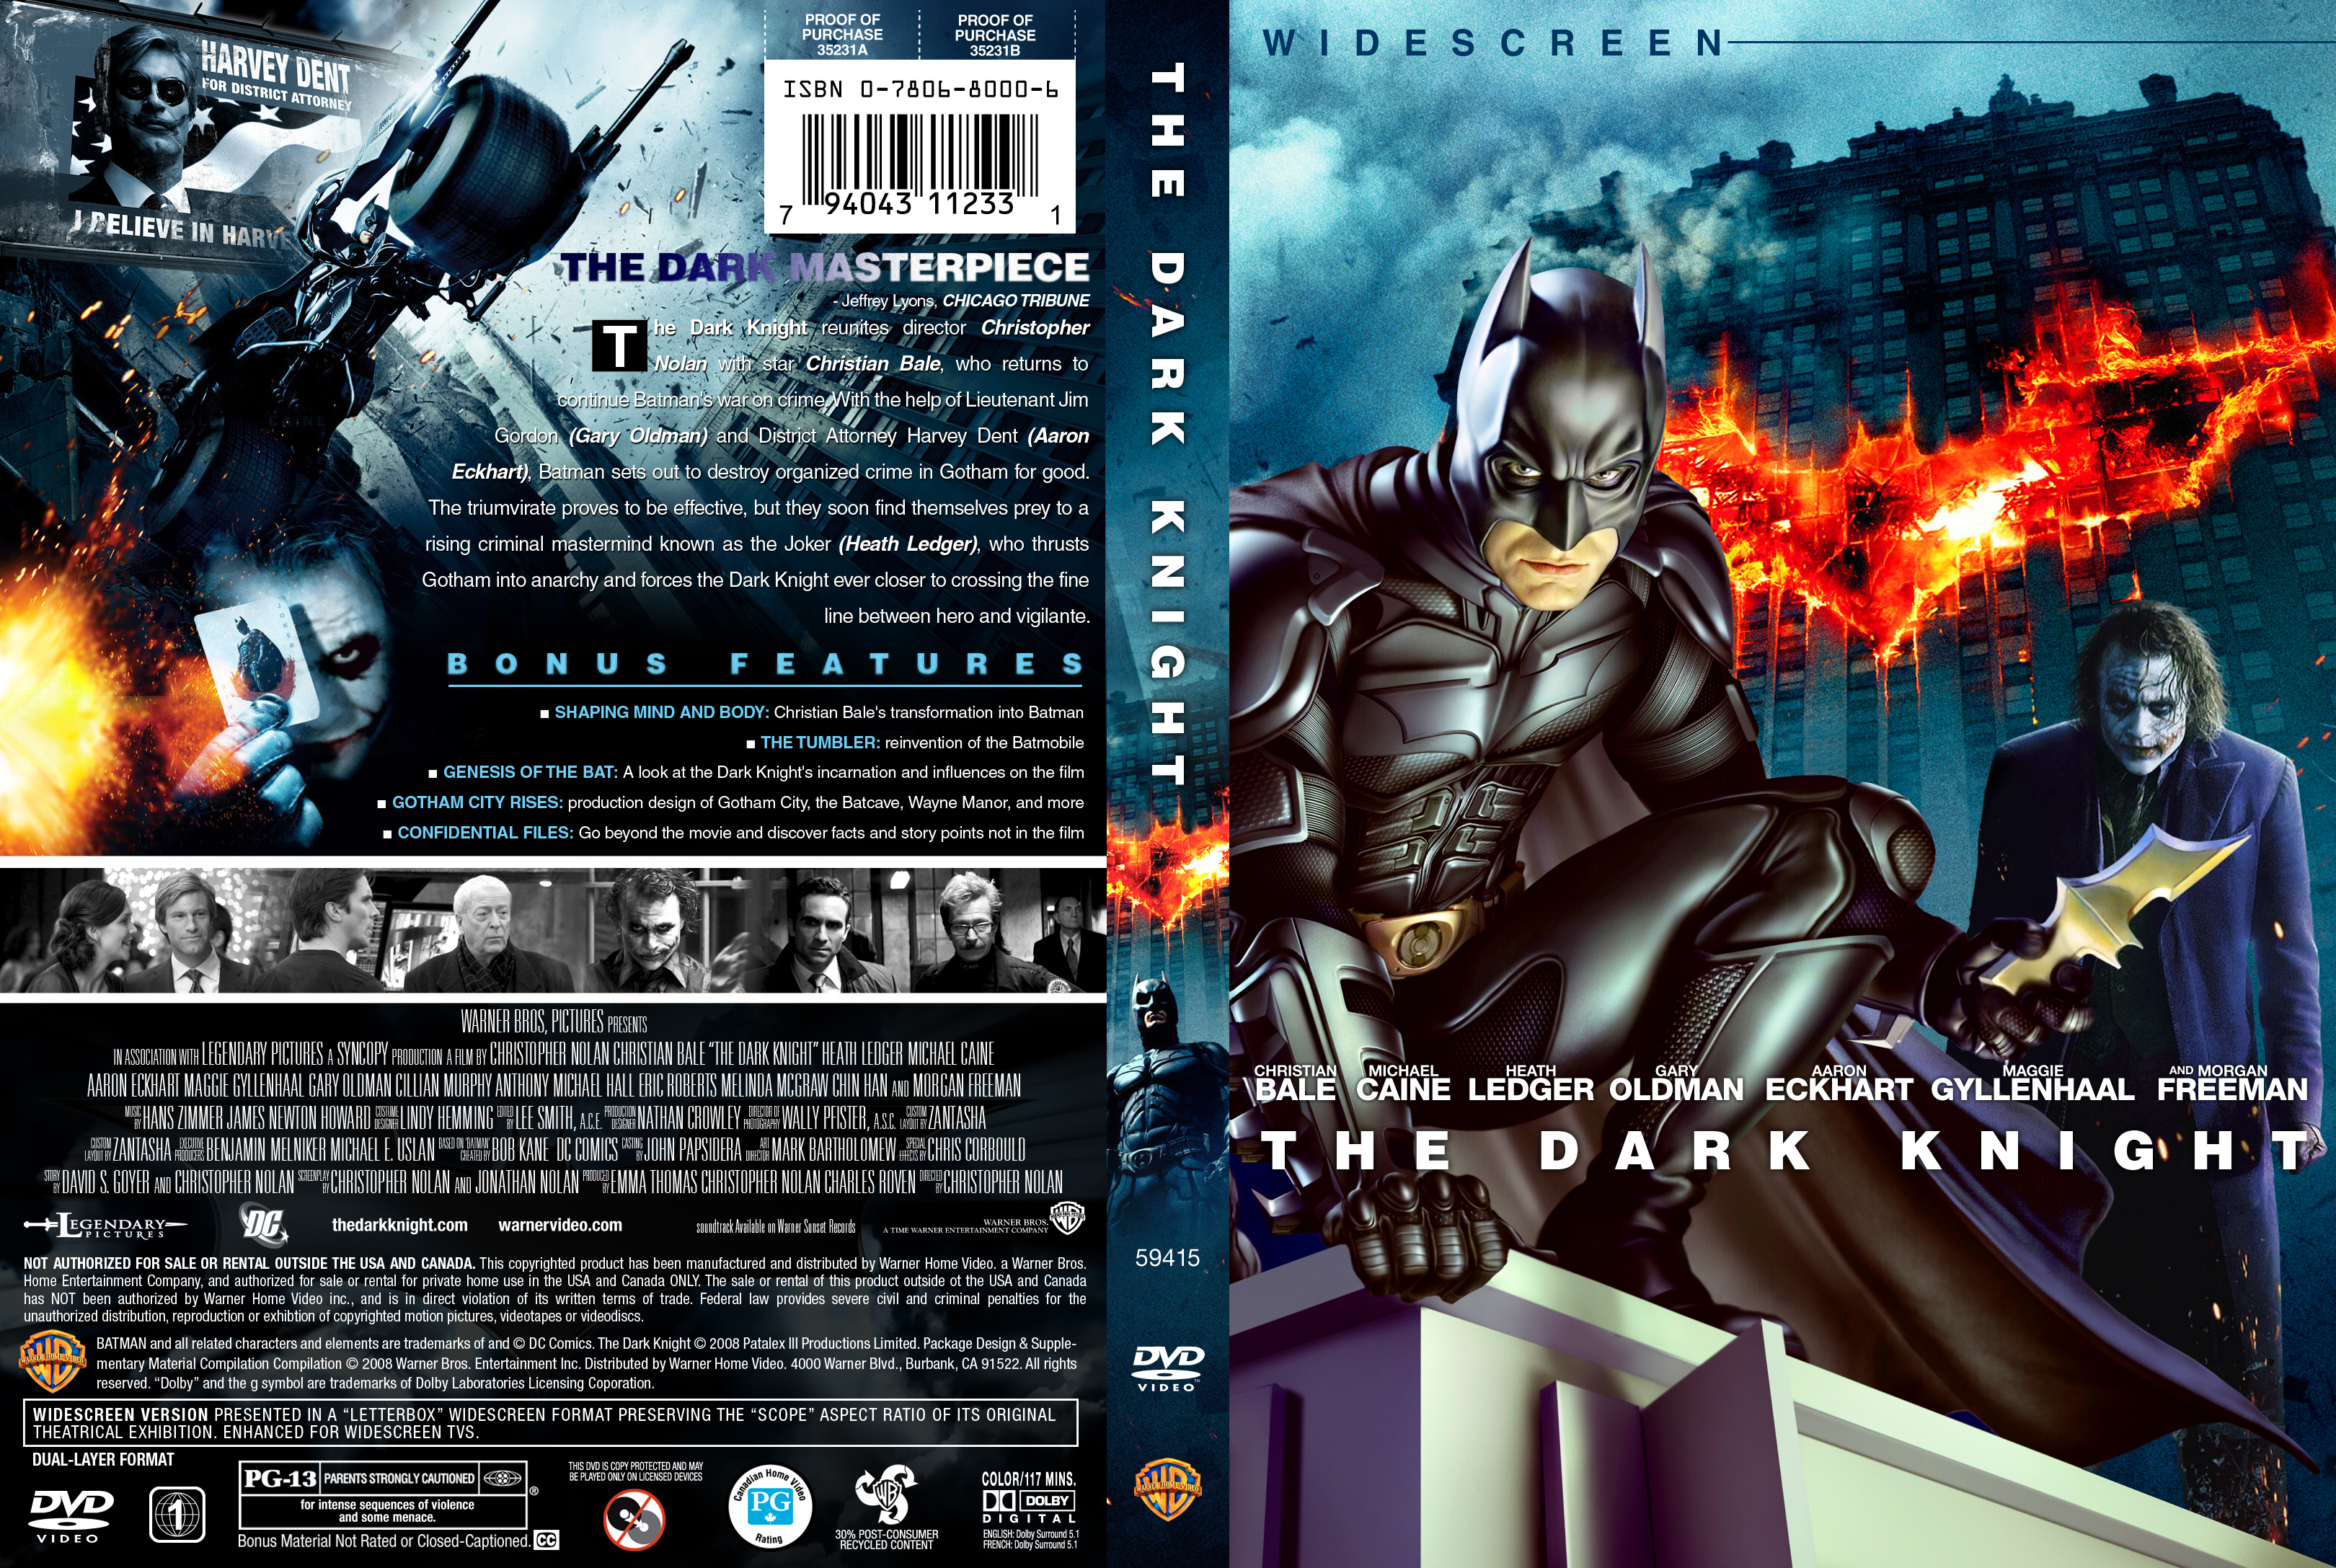 """elements o fdesign in the dark knight essay Electronic health record systemelectronic commerce in private purchasingelectronic mediaelectronic mediaelectronic voting systemselectronic medical records and safetyelements o fdesign in """"the dark knight""""electropneumatics bookelements of the law of contractelements of good feasibility."""